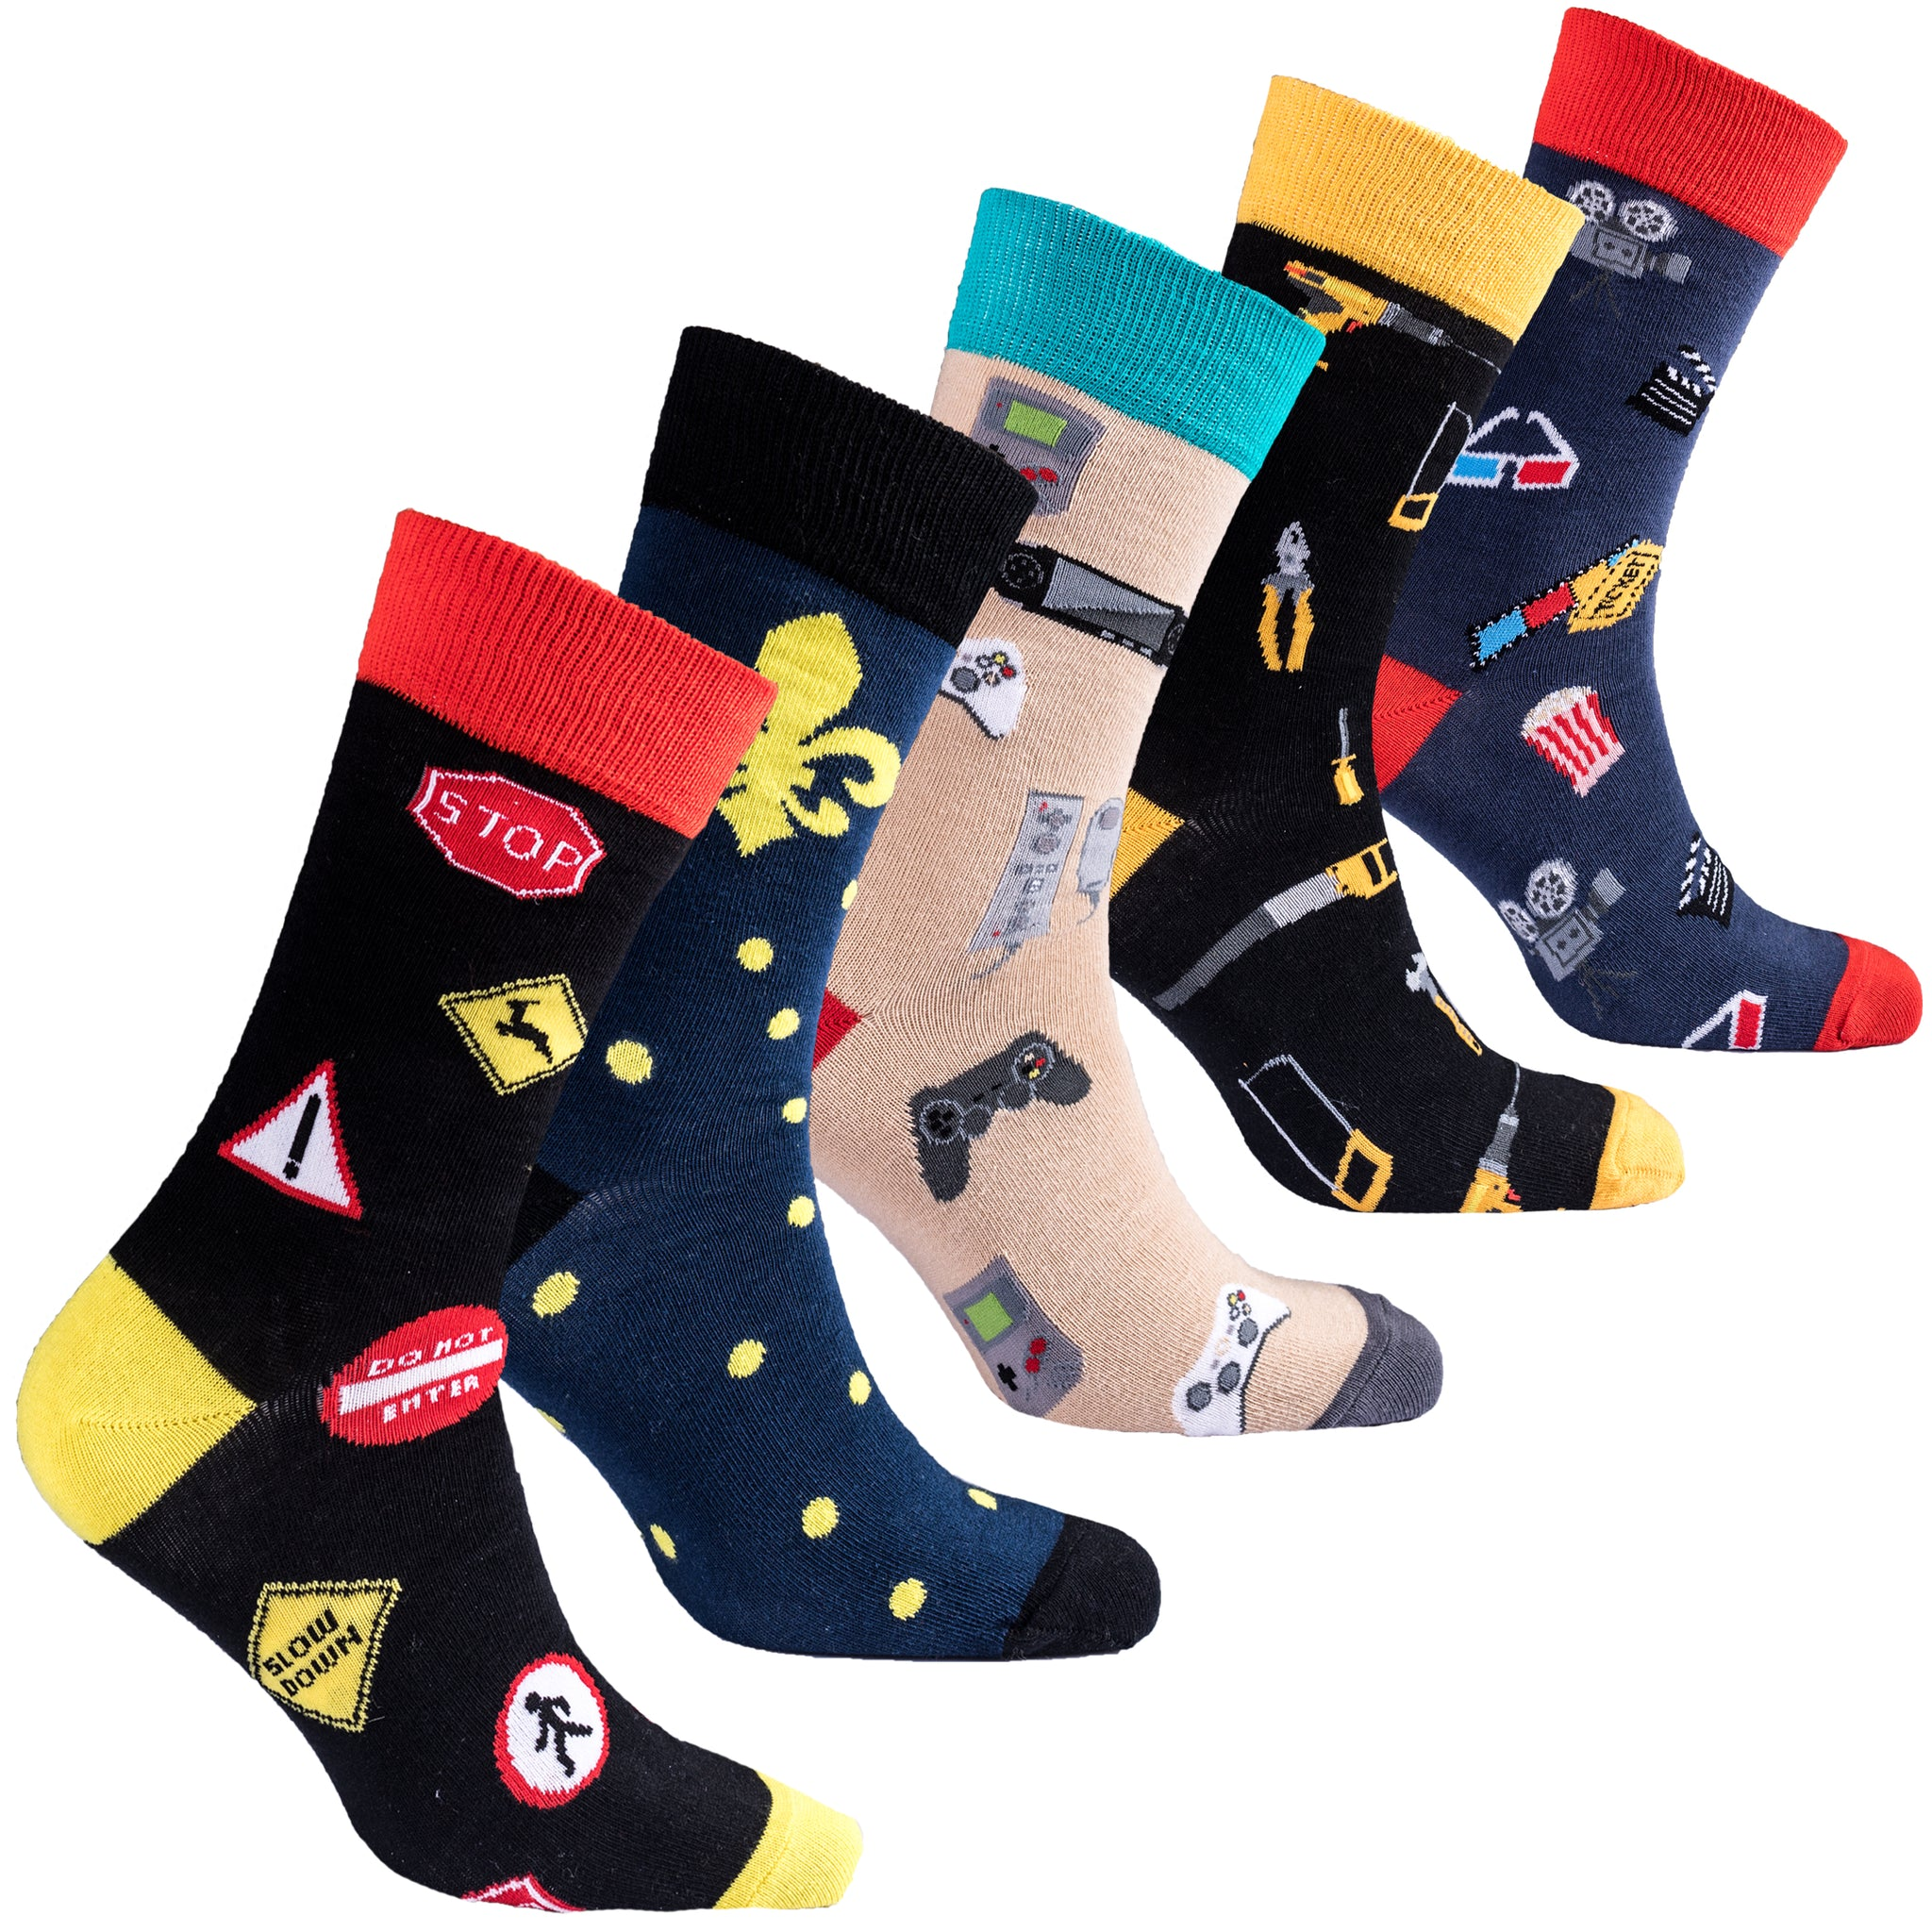 Men's Entertainment Socks